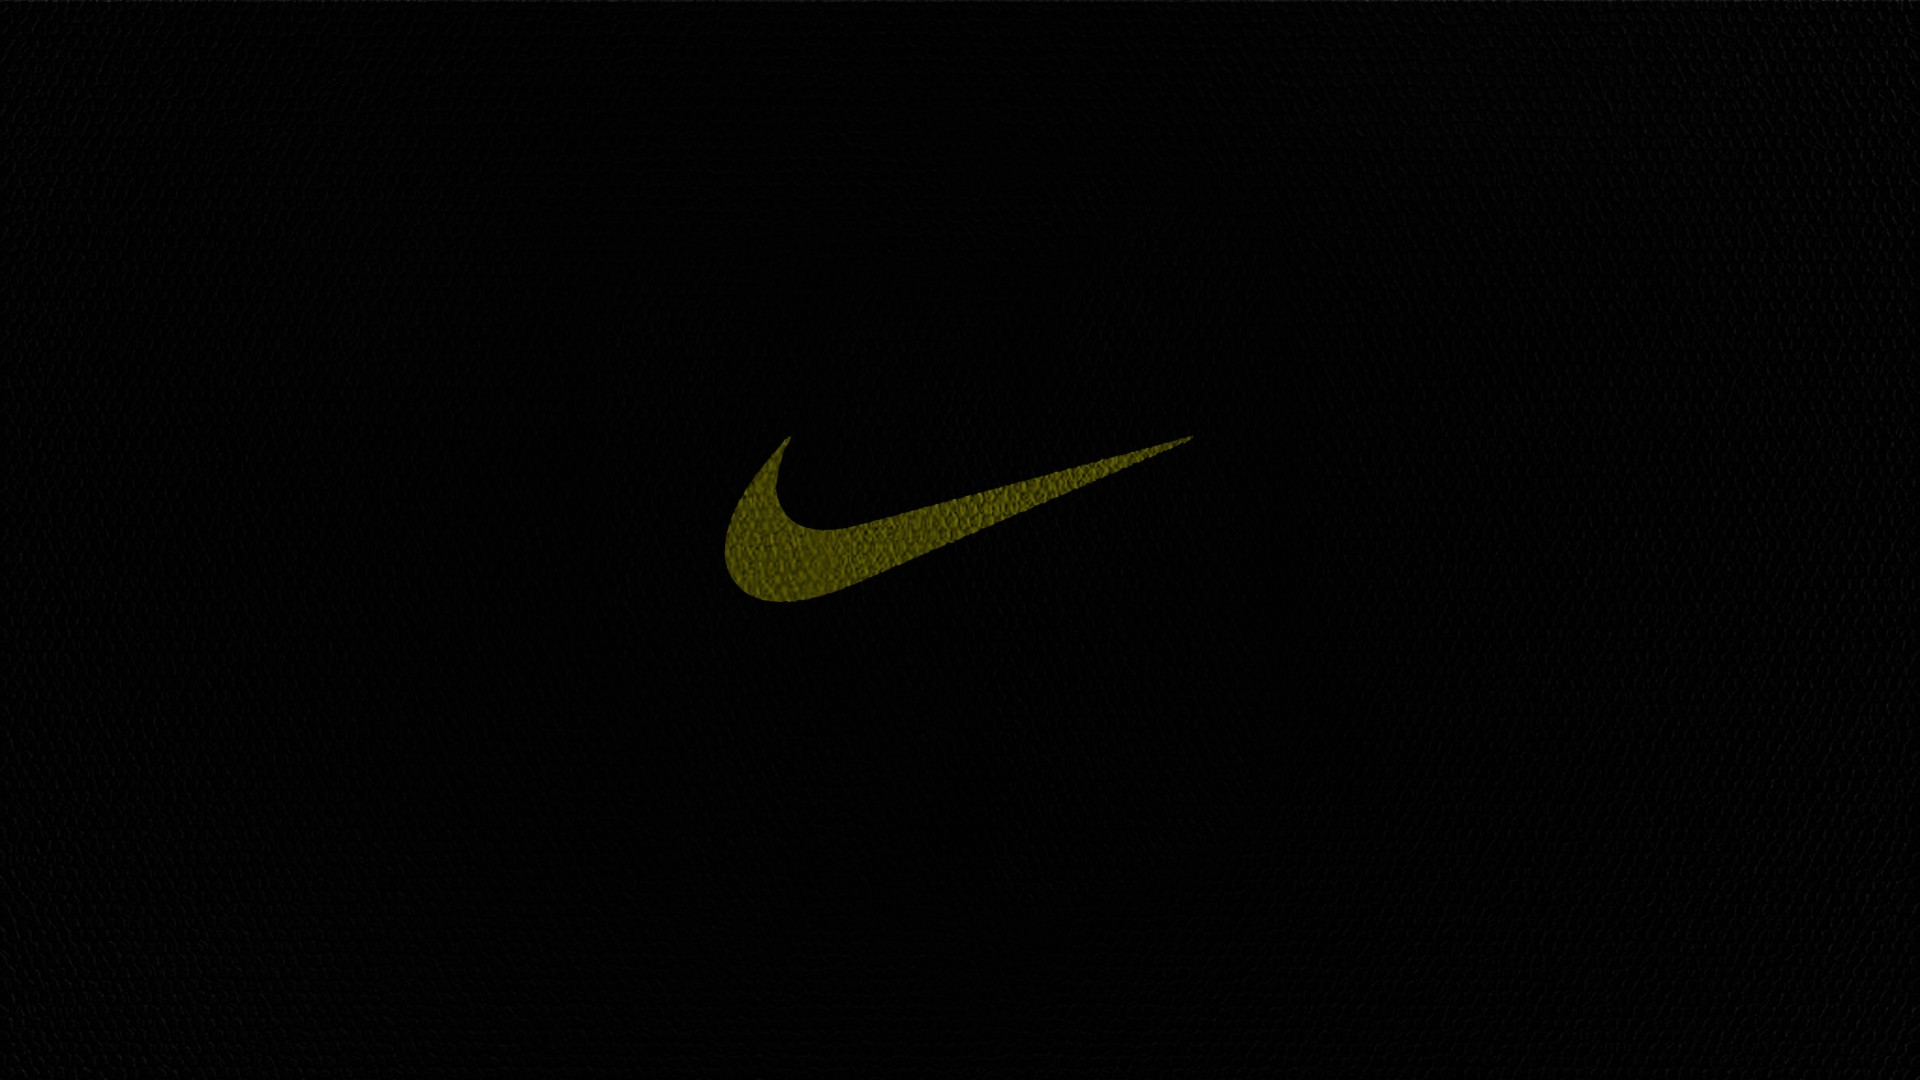 Hd wallpaper nike - Nike Wallpaper Hd Wallpaper 1390791